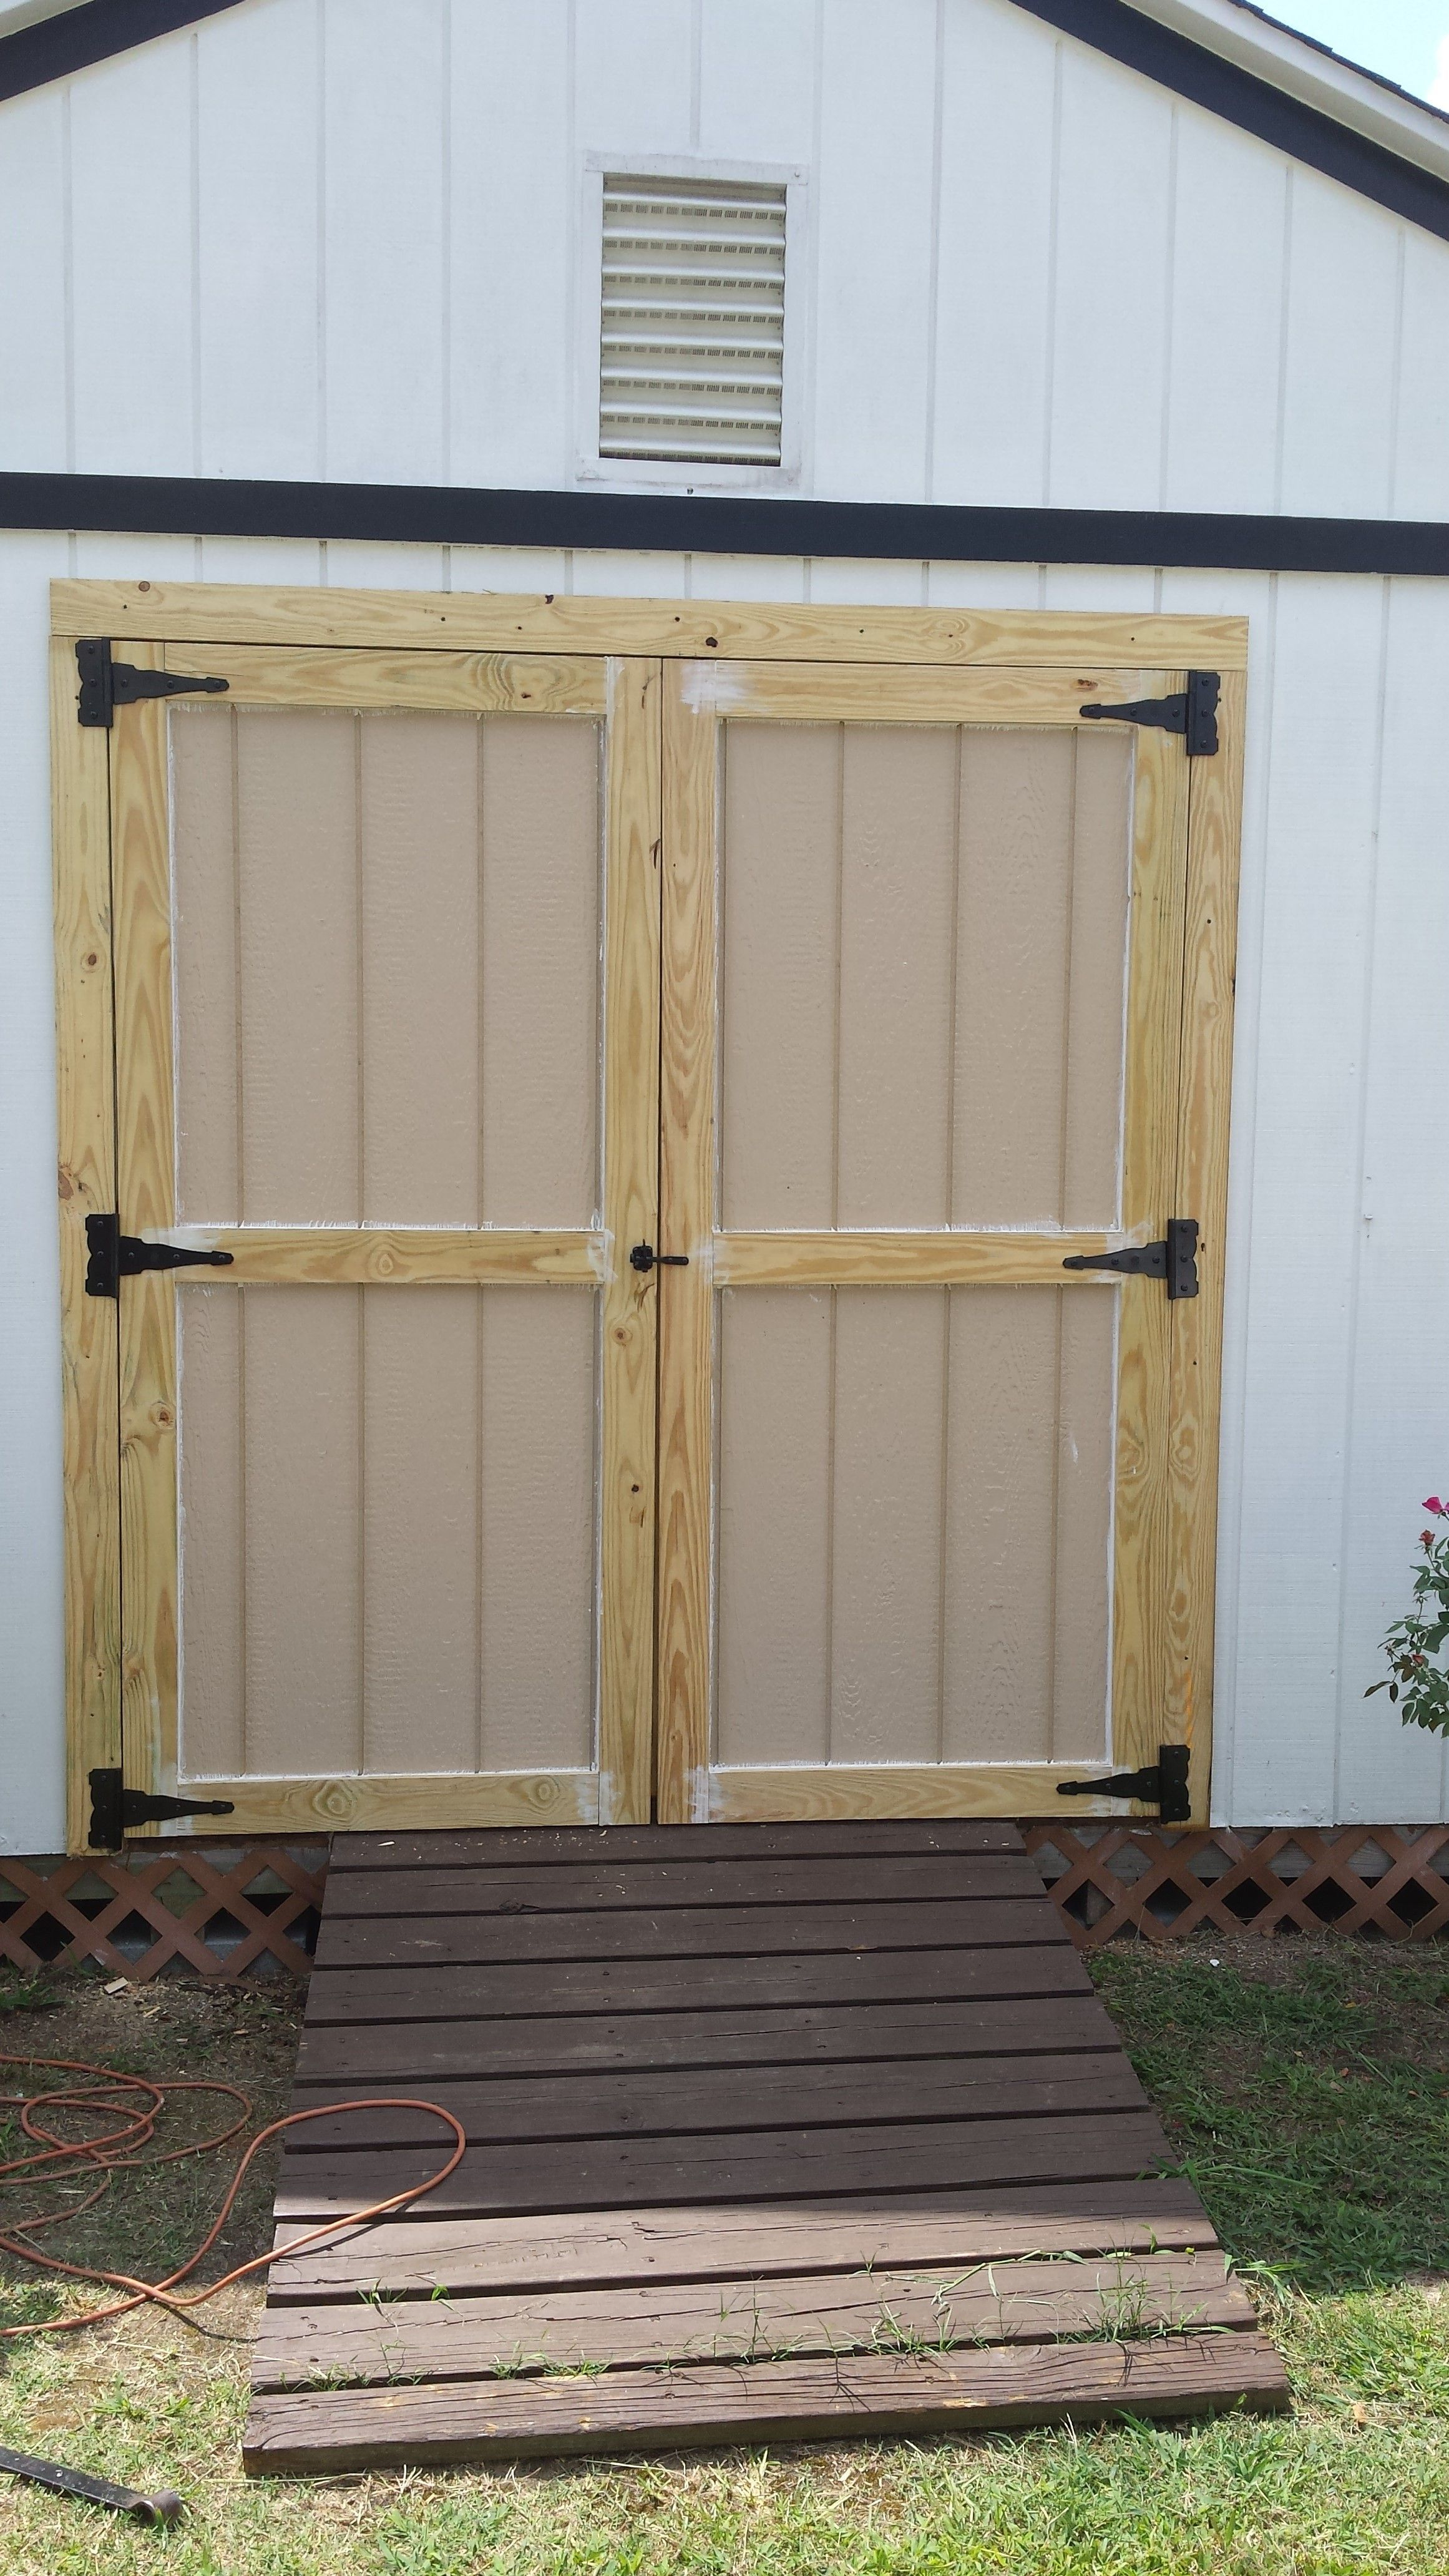 Brand New Shed Doors Installed For Client Old Door Was Rotting And Did Not Swing Well Fixed Up Makes The Shed Look Ne Shed Doors Shed Makeover Garage Doors